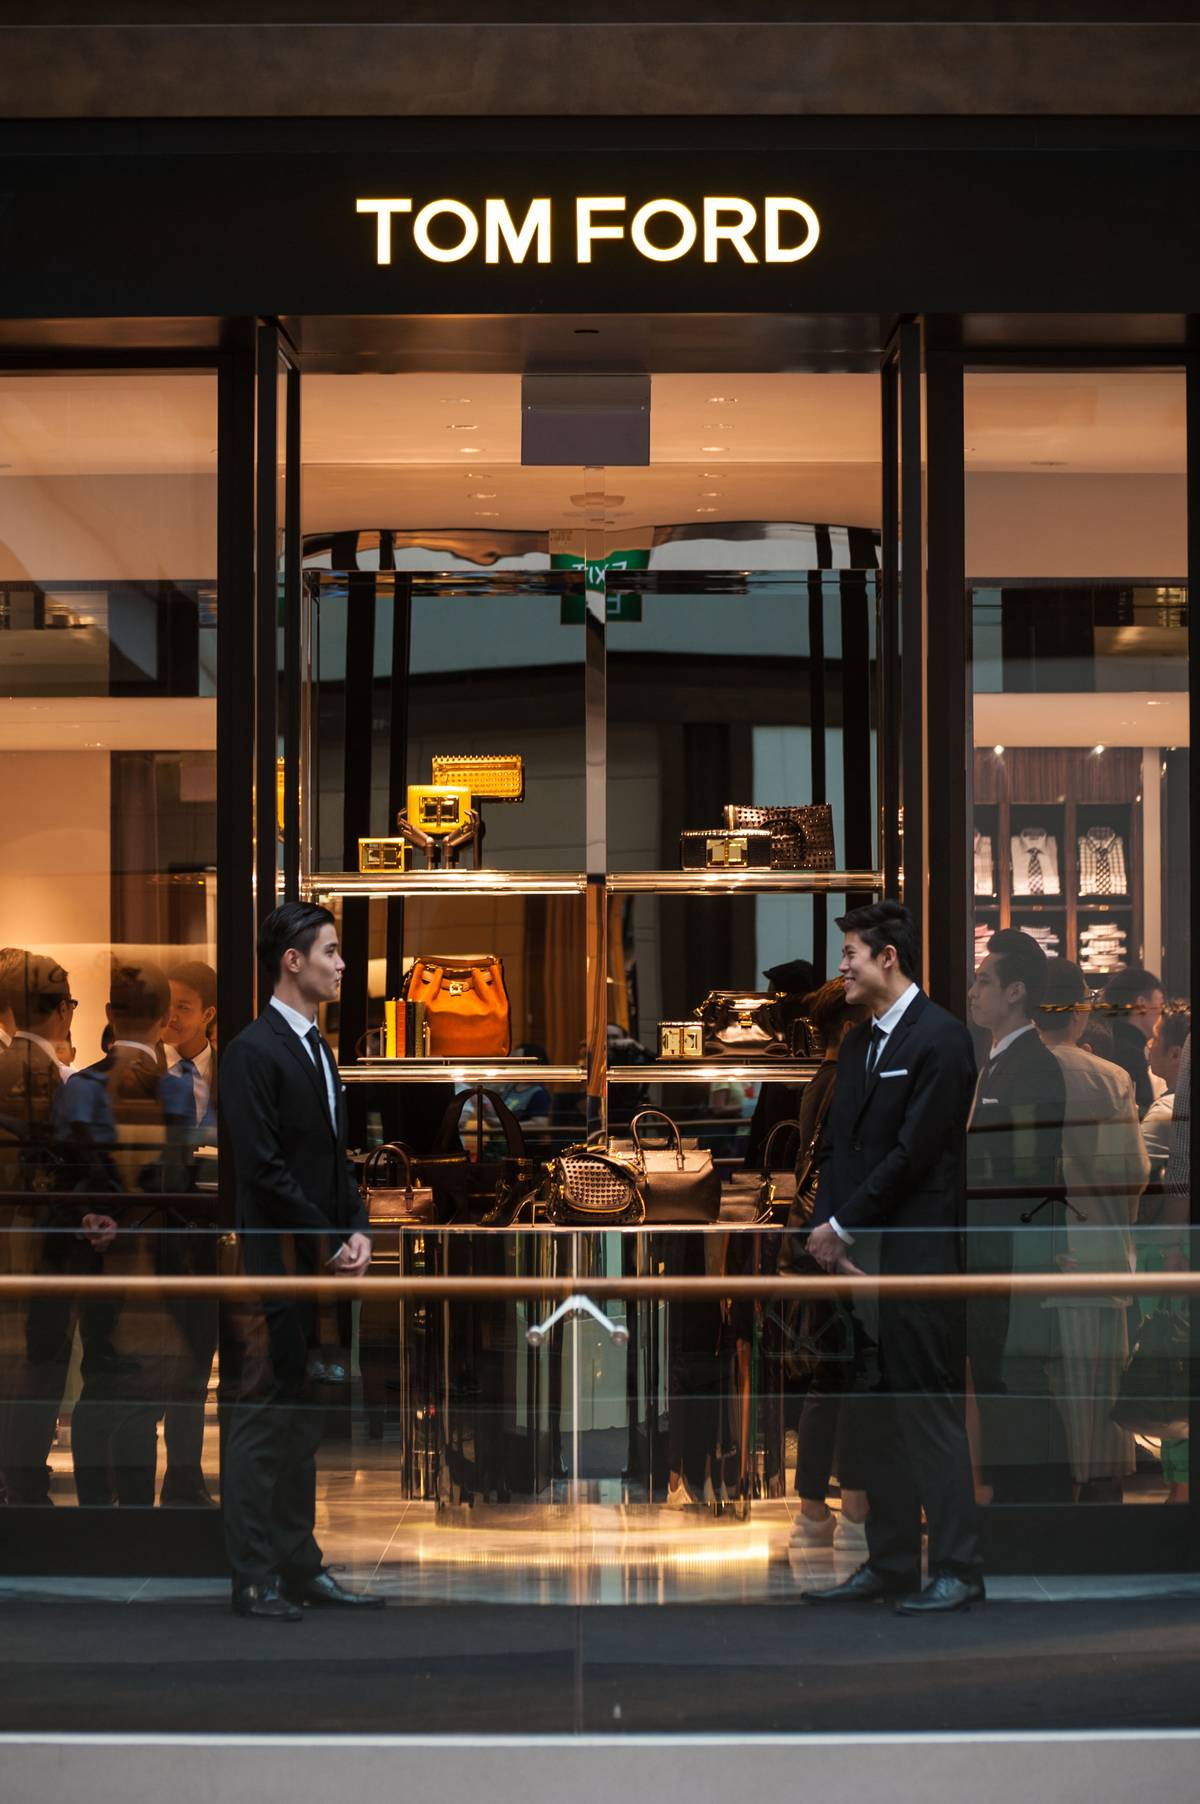 6655b1e1d19 TOM FORD Opens 1st Store in South East Asia at Marina Bay Sands in Singapore  | SENATUS